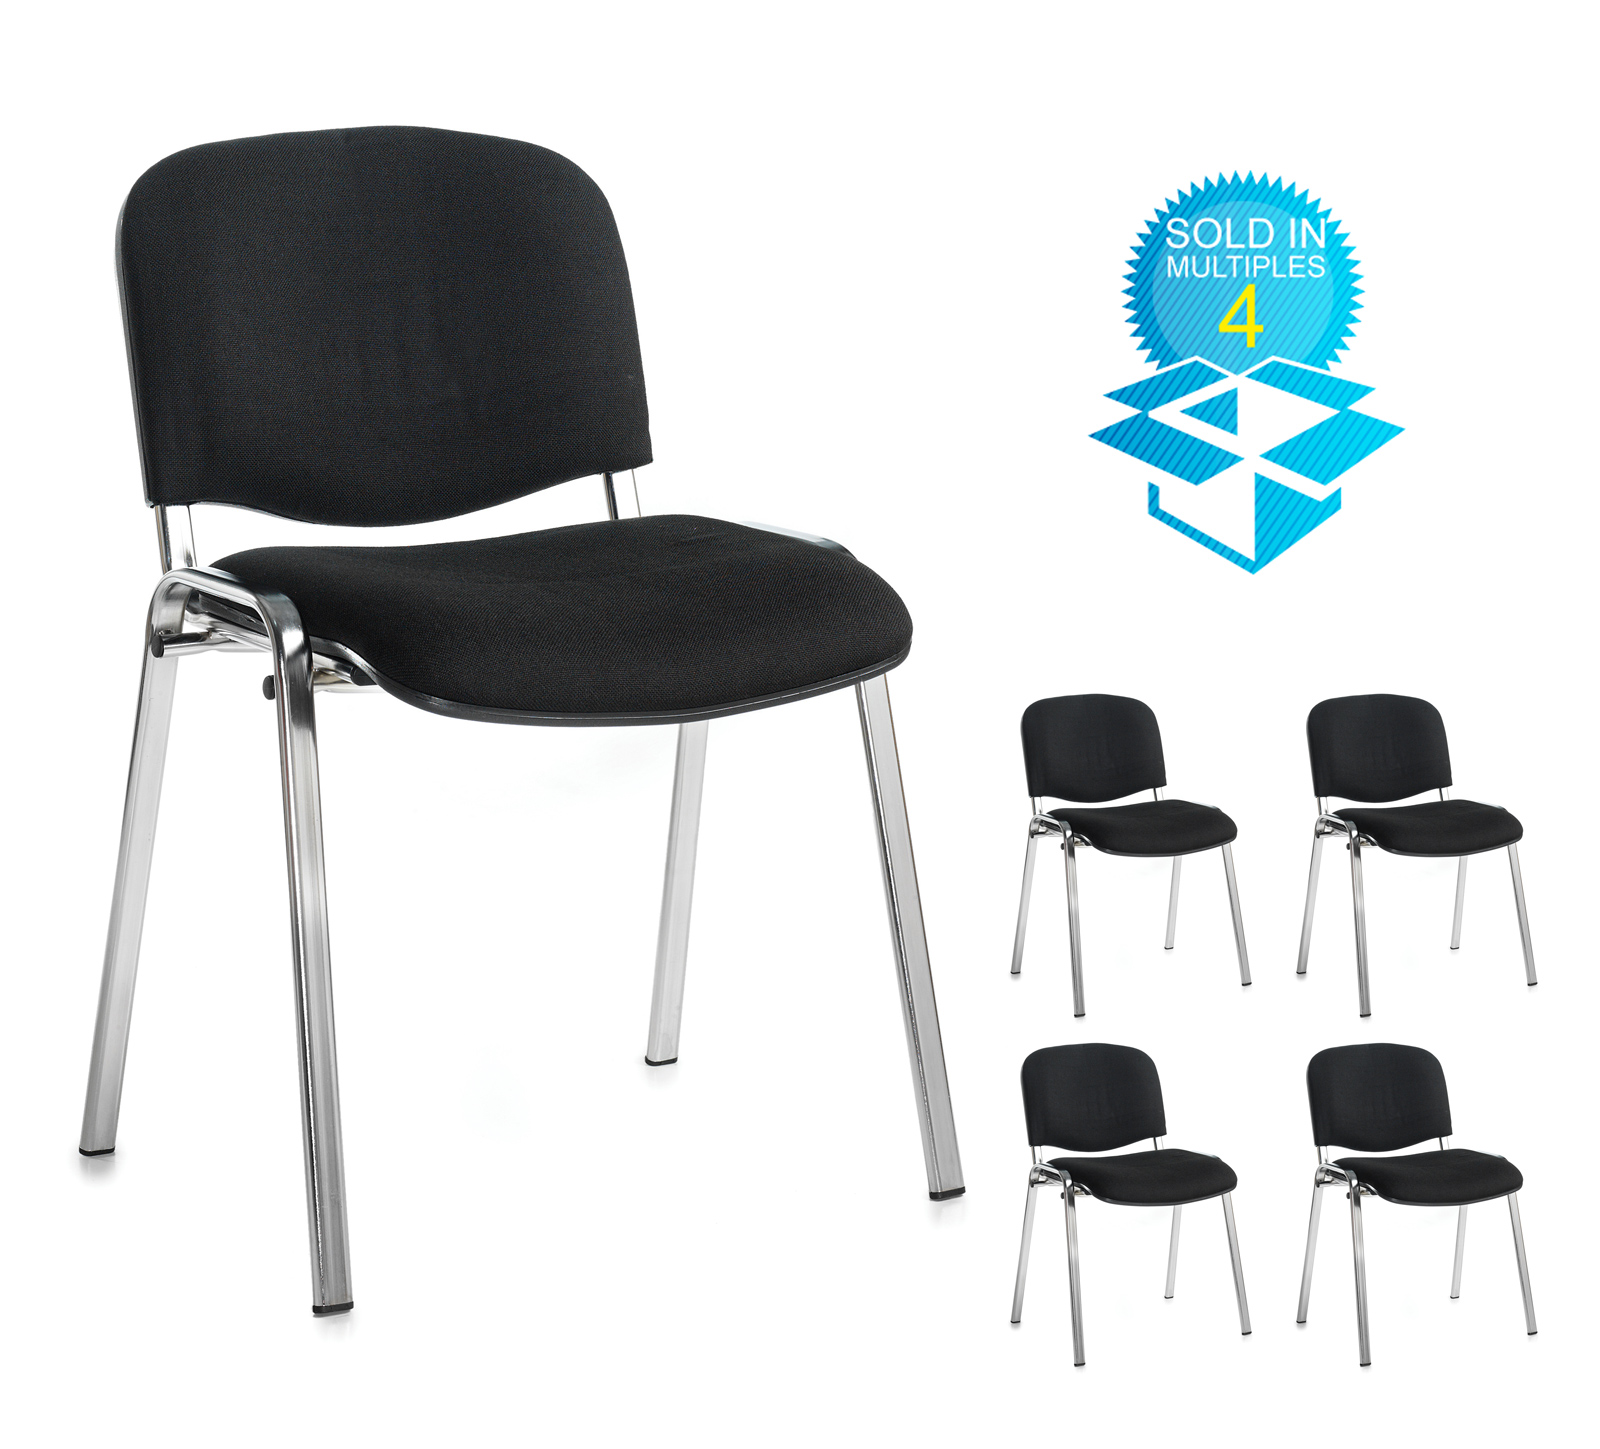 Taurus meeting room stackable chair (box of 4) with chrome frame and no arms - black